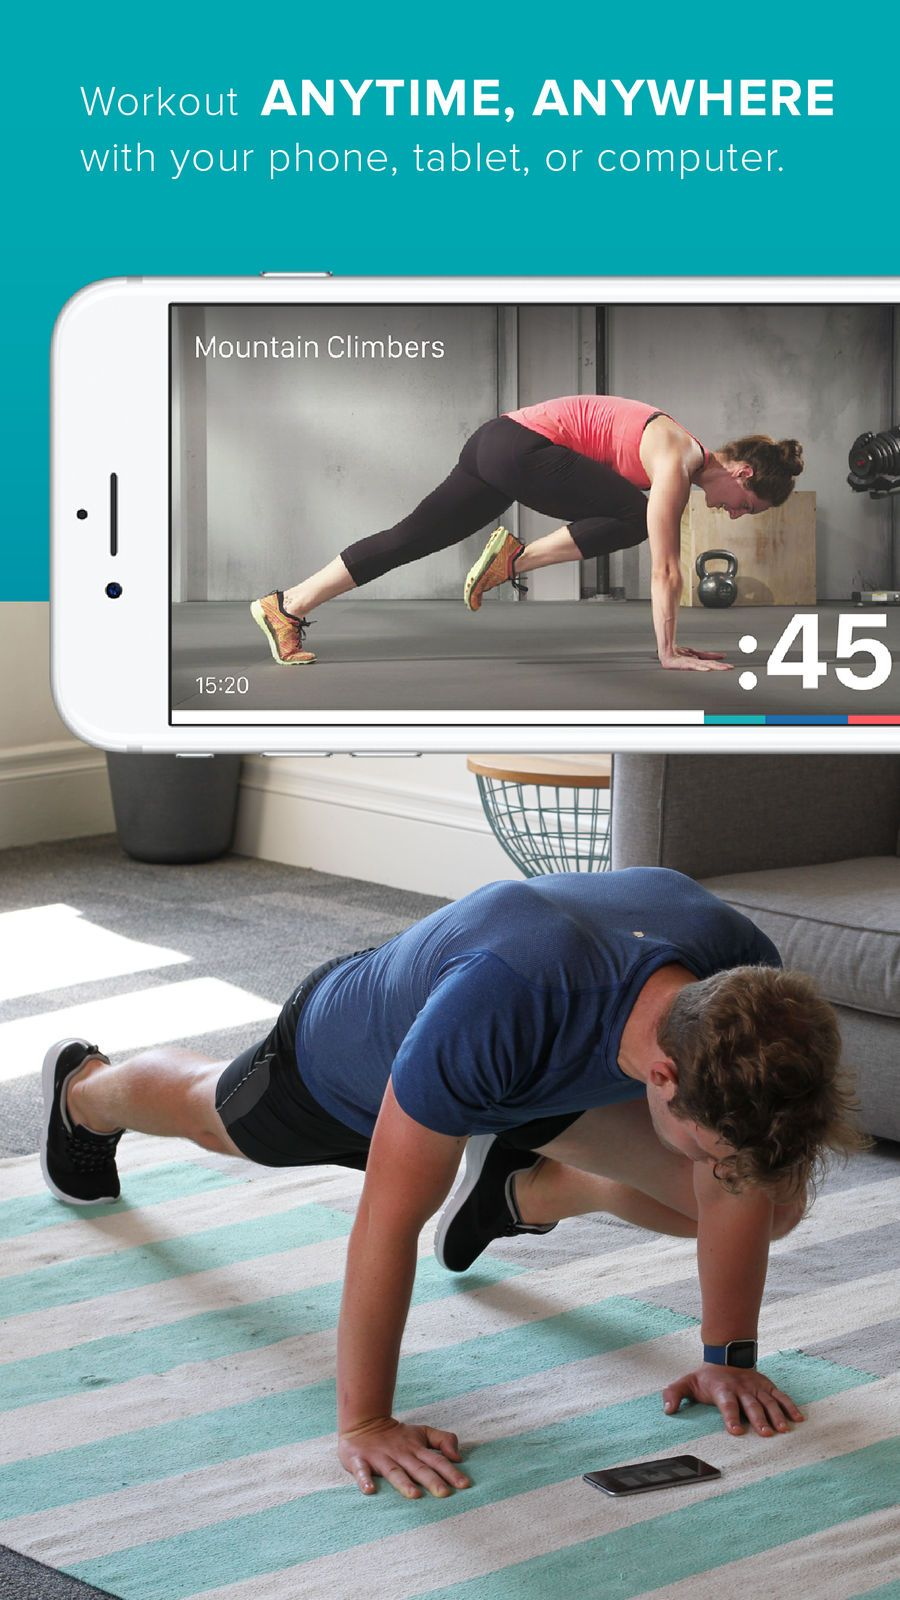 Fitbit Coach SportsFitnessappsios Fitbit, Anytime